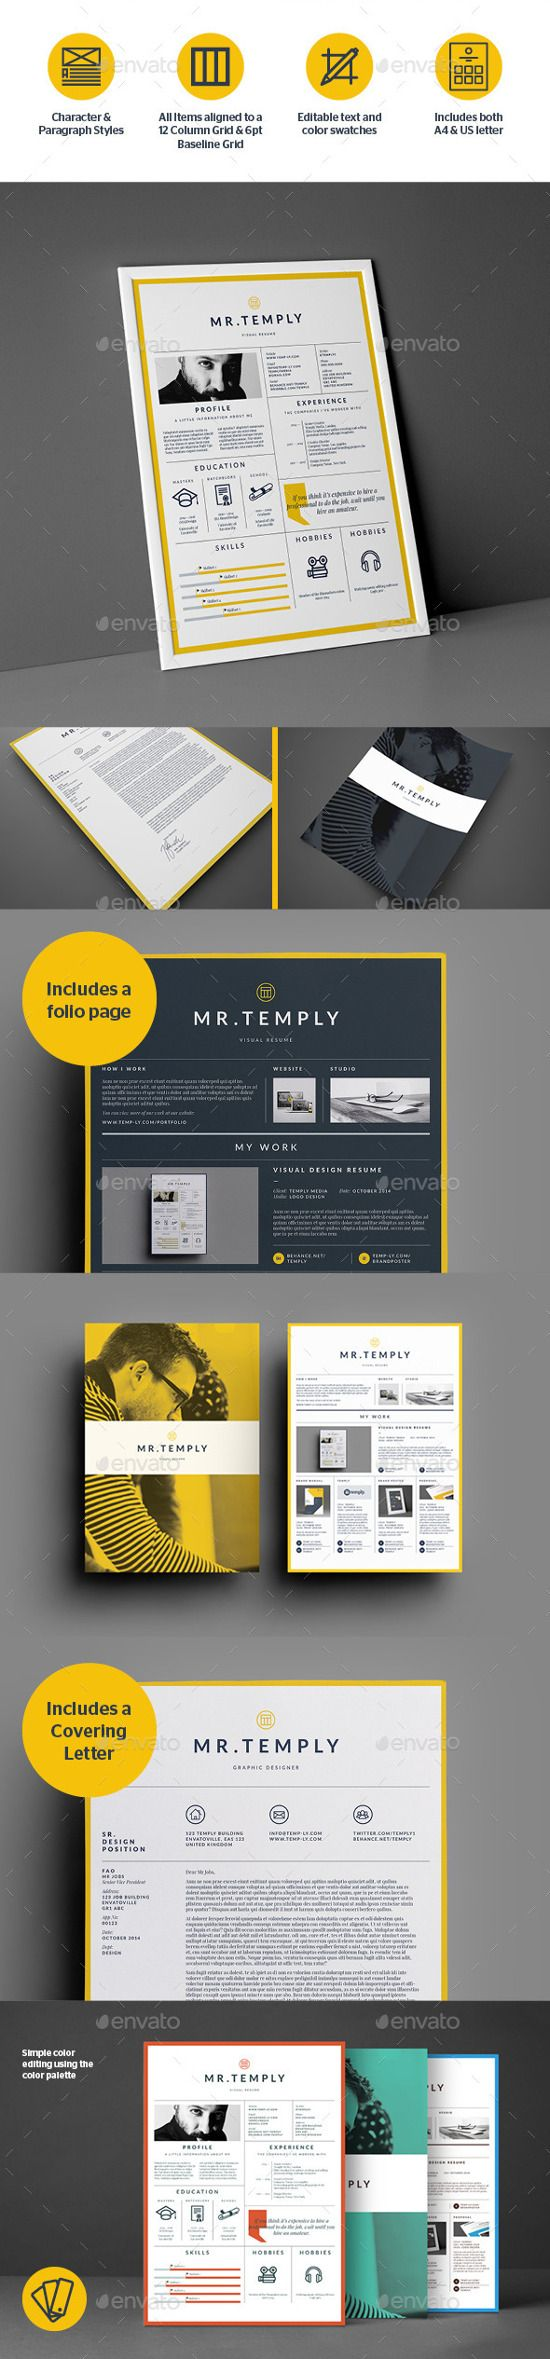 Best Infographic Resume Templates for You 435